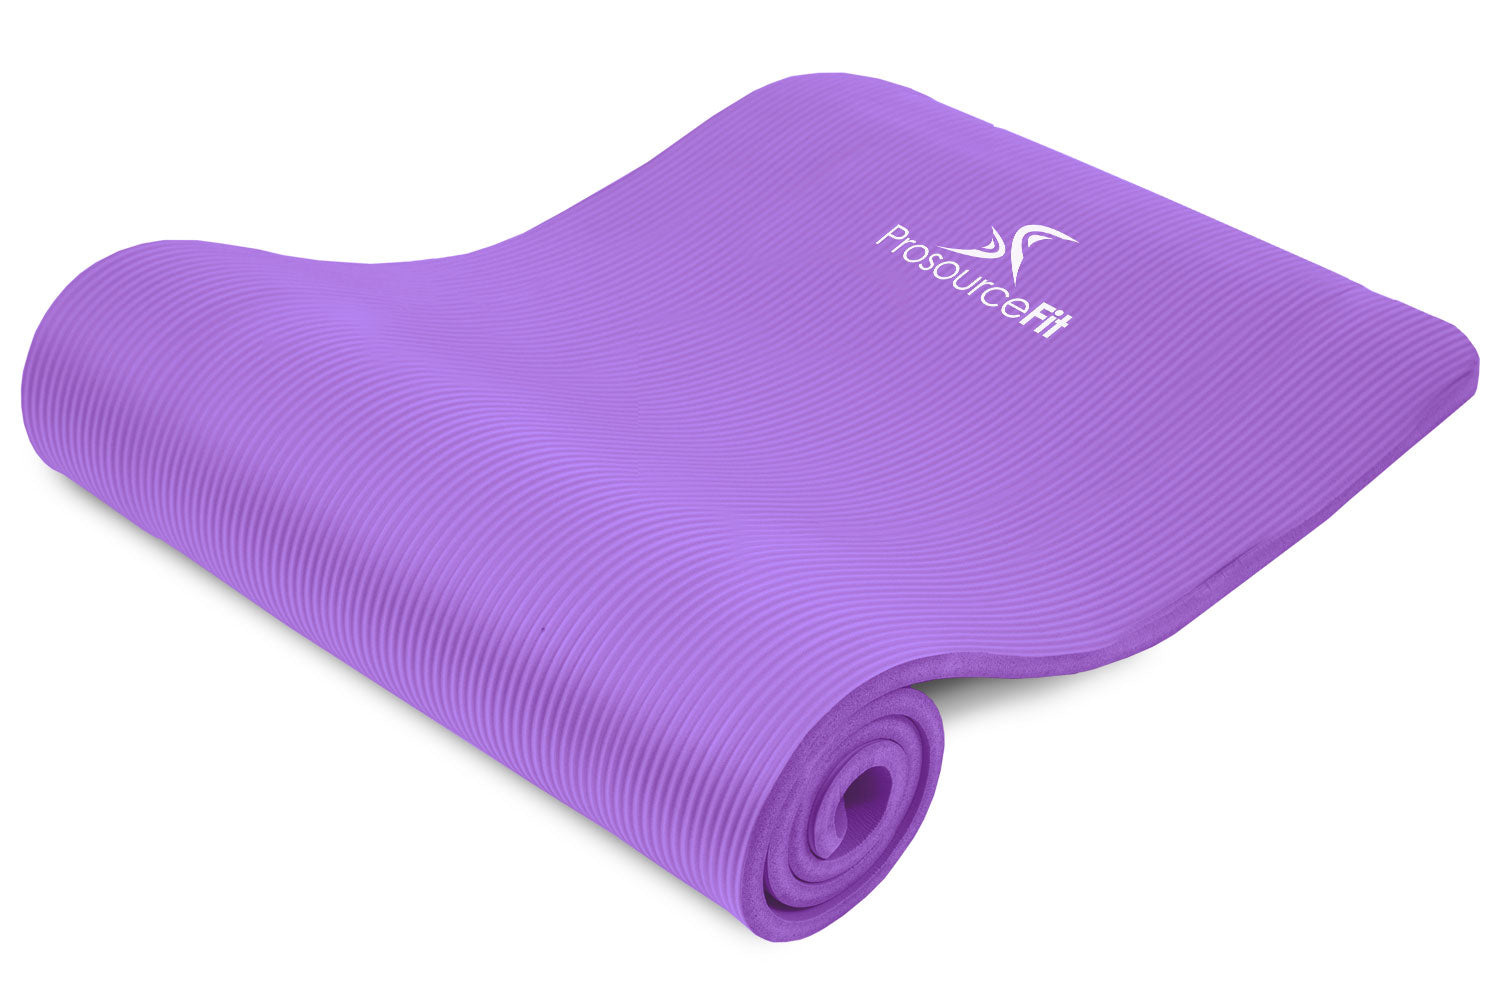 Purple Extra Thick Yoga and Pilates Mat 1/2 inch